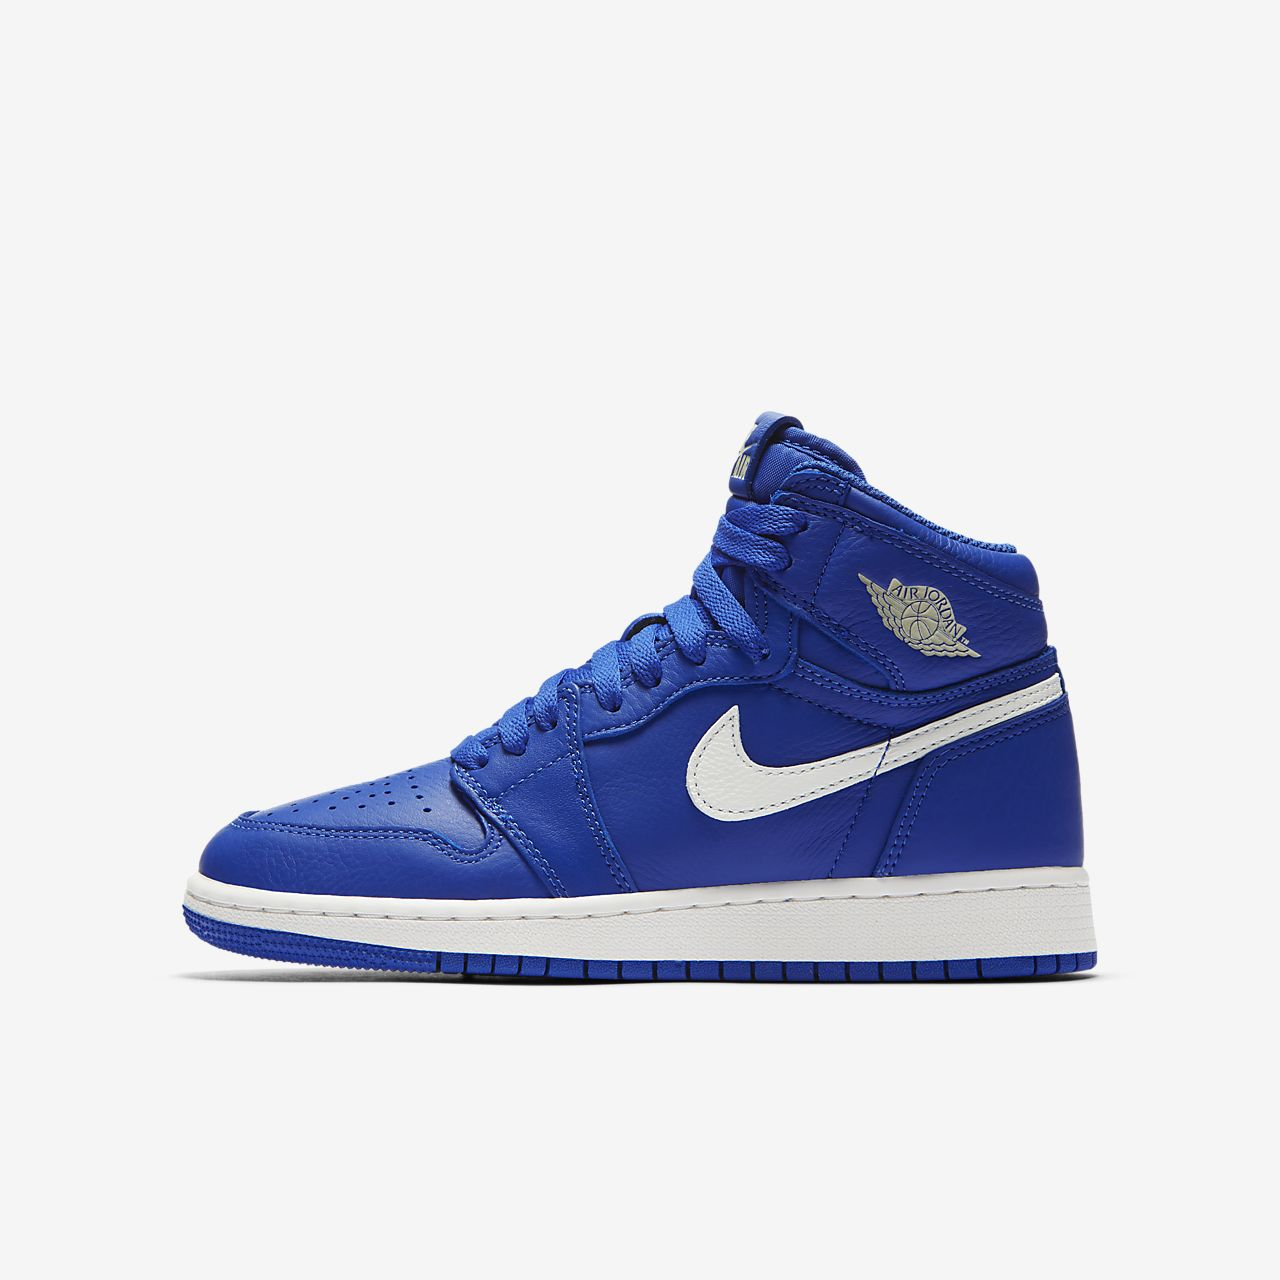 1bee93dd9fd6 Air Jordan 1 Retro High OG Boys  Shoe. Nike.com IN